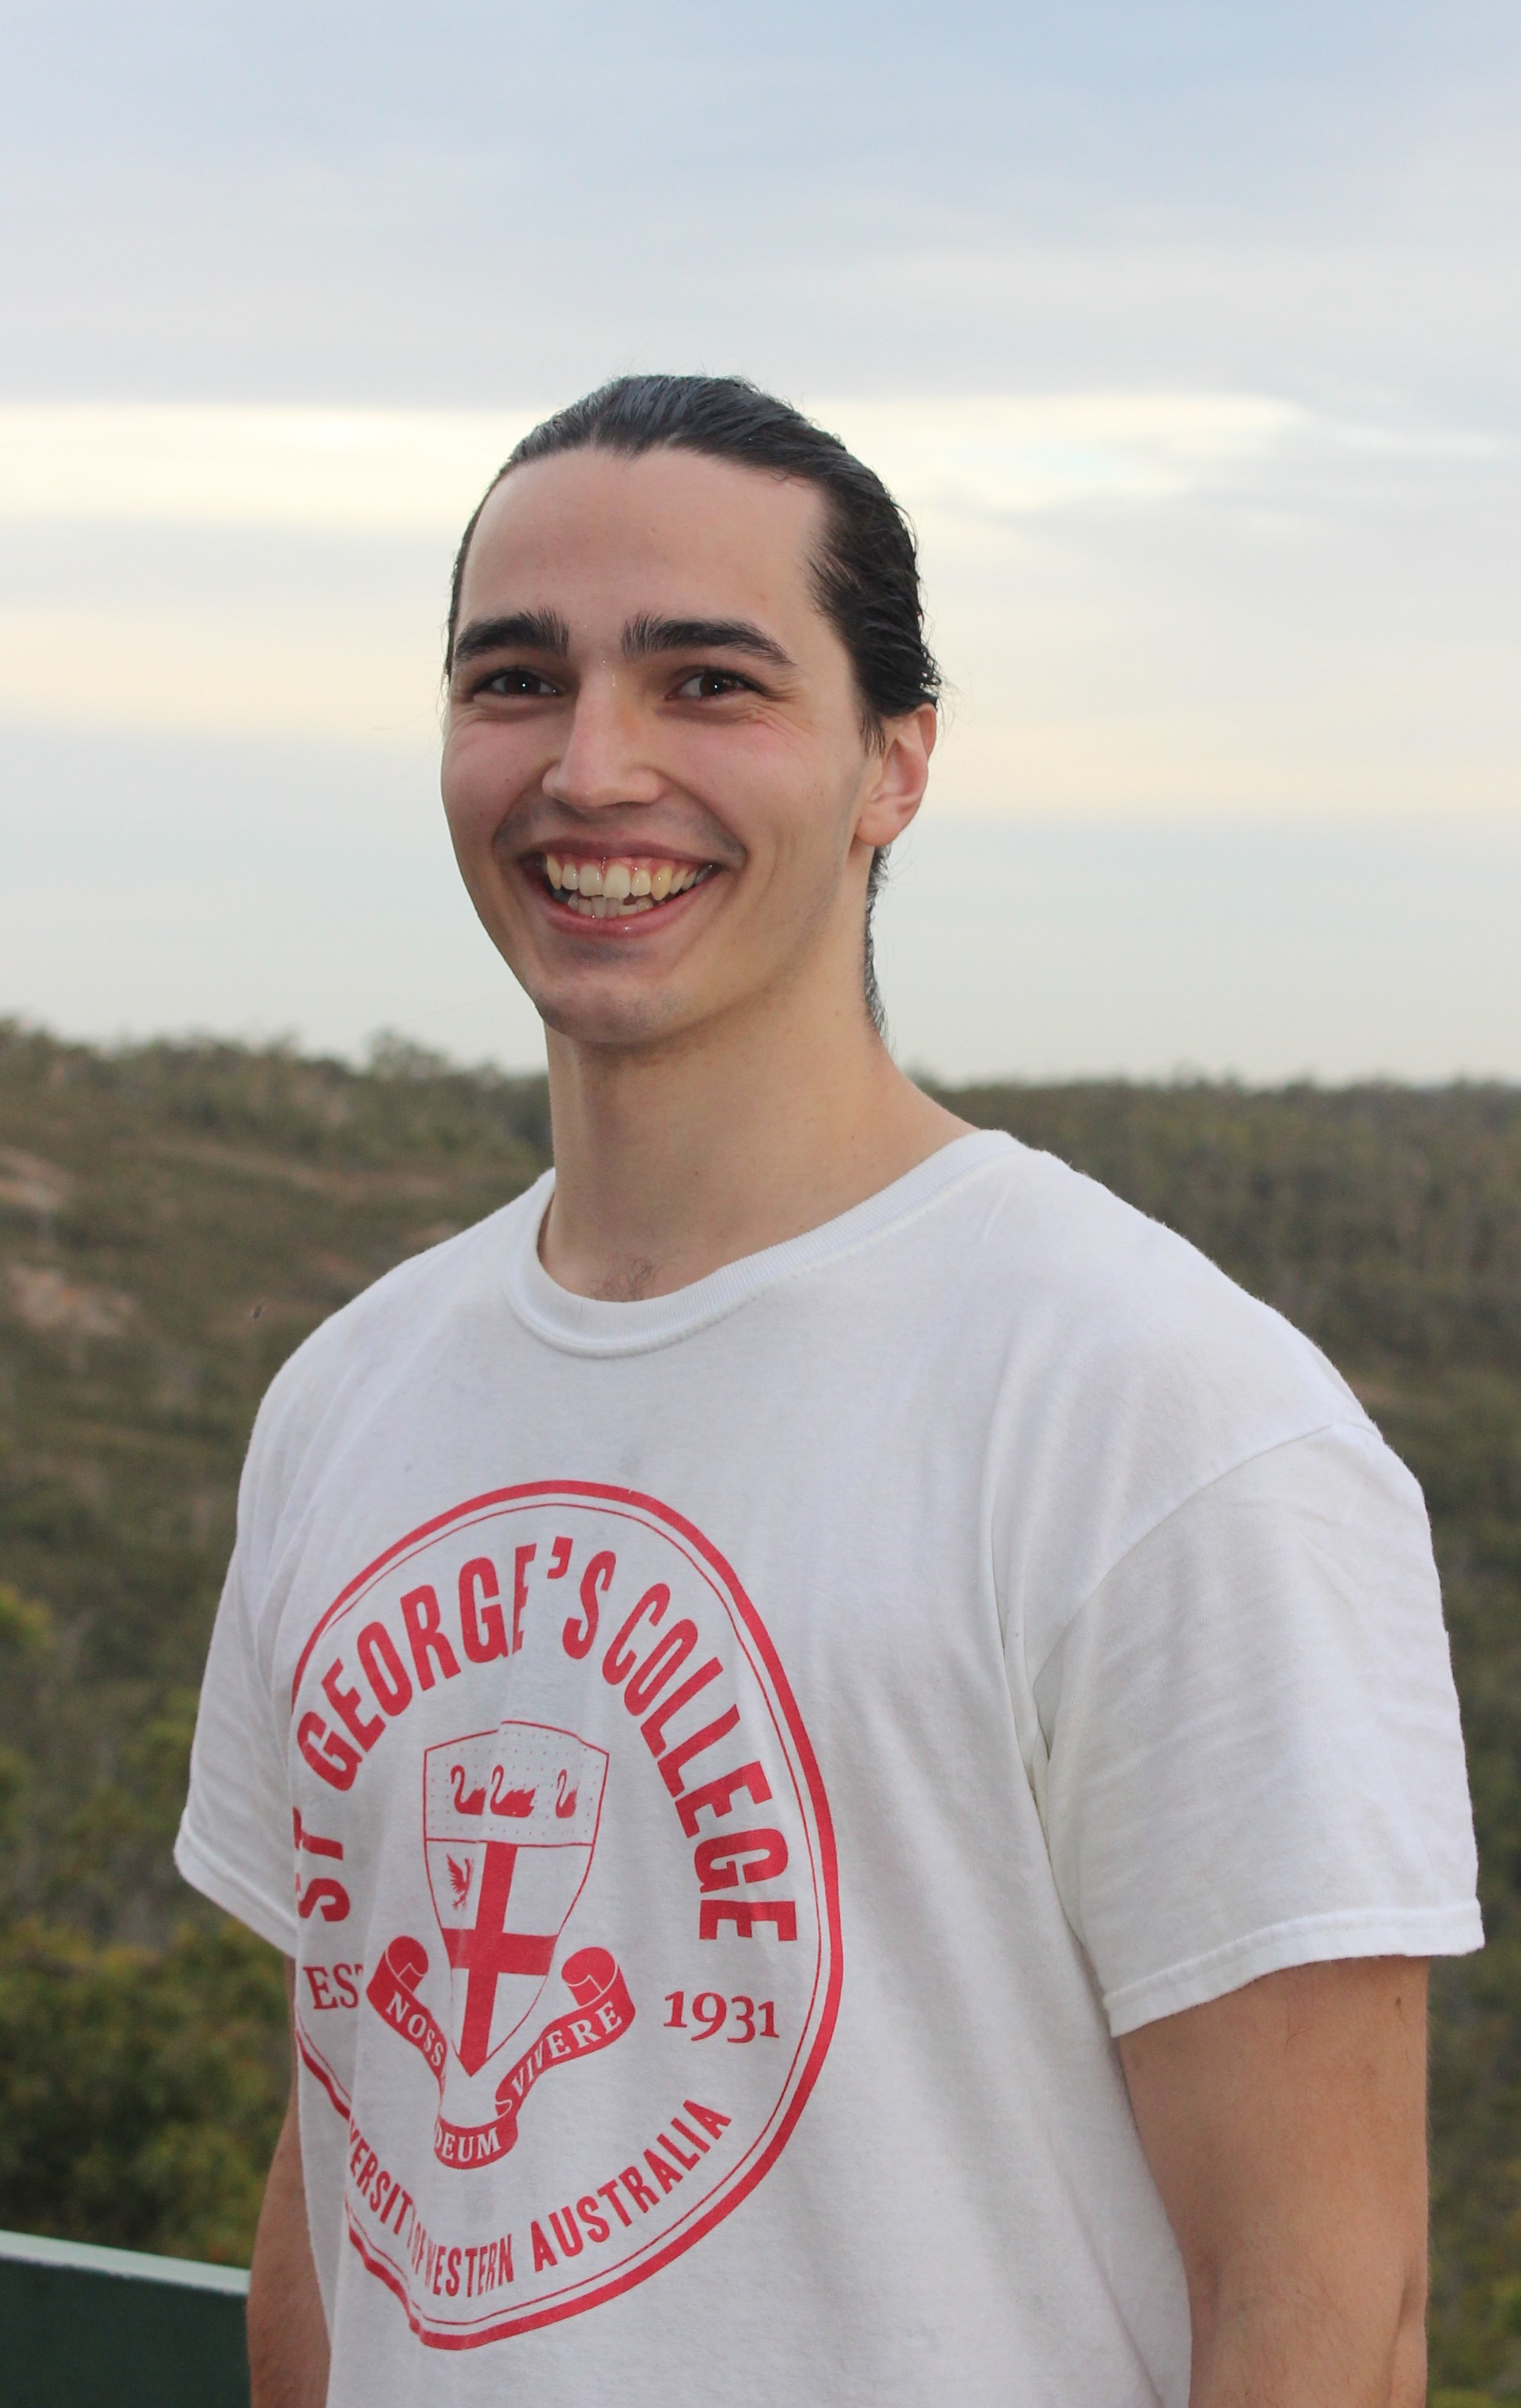 My name is Eden and despite being a Perth boy born and raised, I've been at College since midway through 2015. At first I had my doubts about College but after 100s of cups of tea with friends and millions of amazing memories, I can't see myself anywhere else. I started off studying Anatomy and have since changed to Management (now finished) and Music (still going). People talk about how much you grow at uni and how much changes post high school and I think College really is the best place to be for all of it. I mean, not so many people can say they've lived in a castle while at uni.